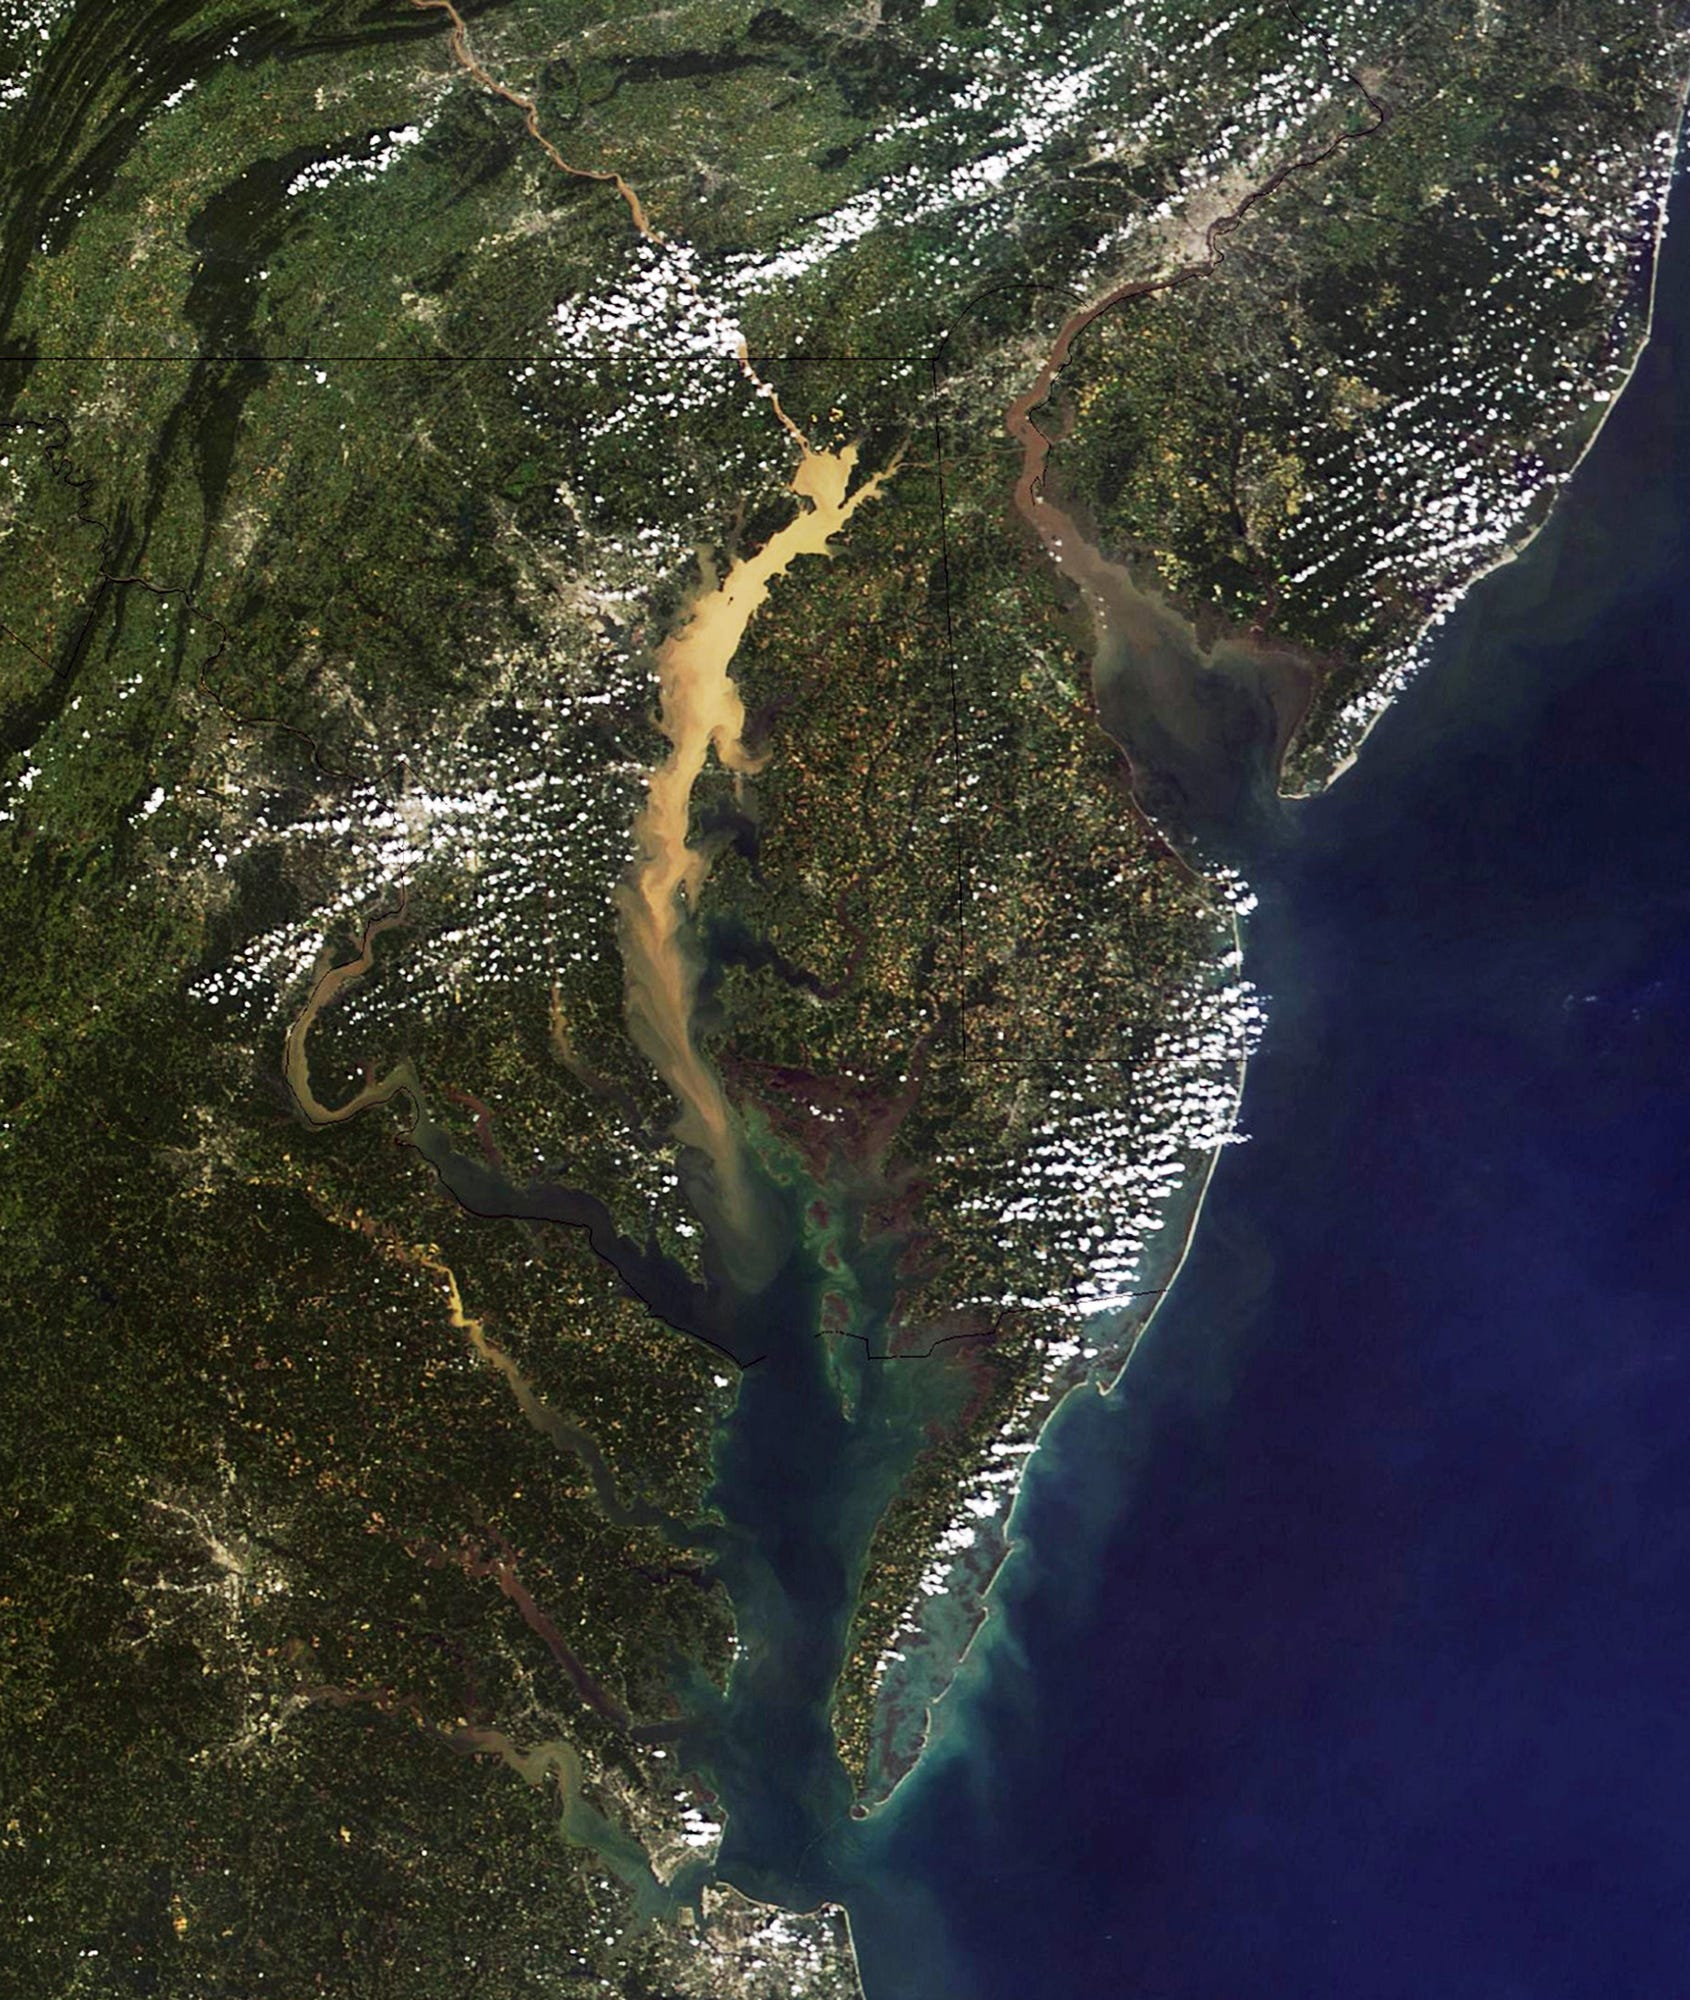 Plumes of sediment turned the water brown in both the Chesapeake and Delaware bays after Tropical Storm Lee in 2011.